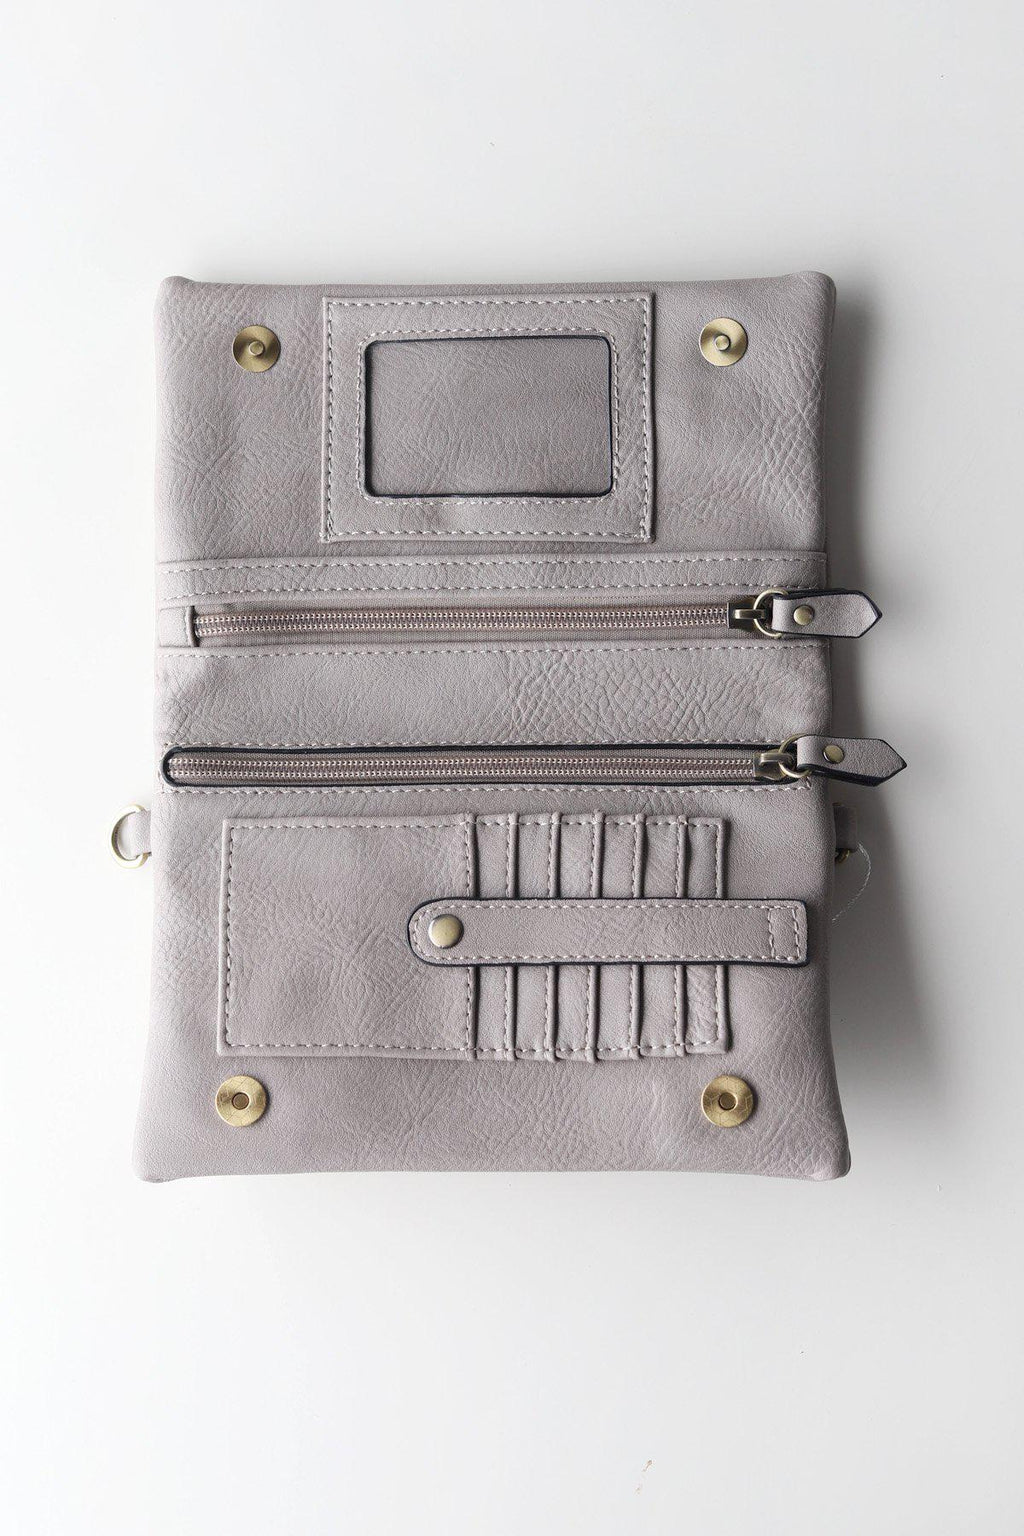 Crossbody Clutch / Mystic Grey - Gallery 512 Boutique